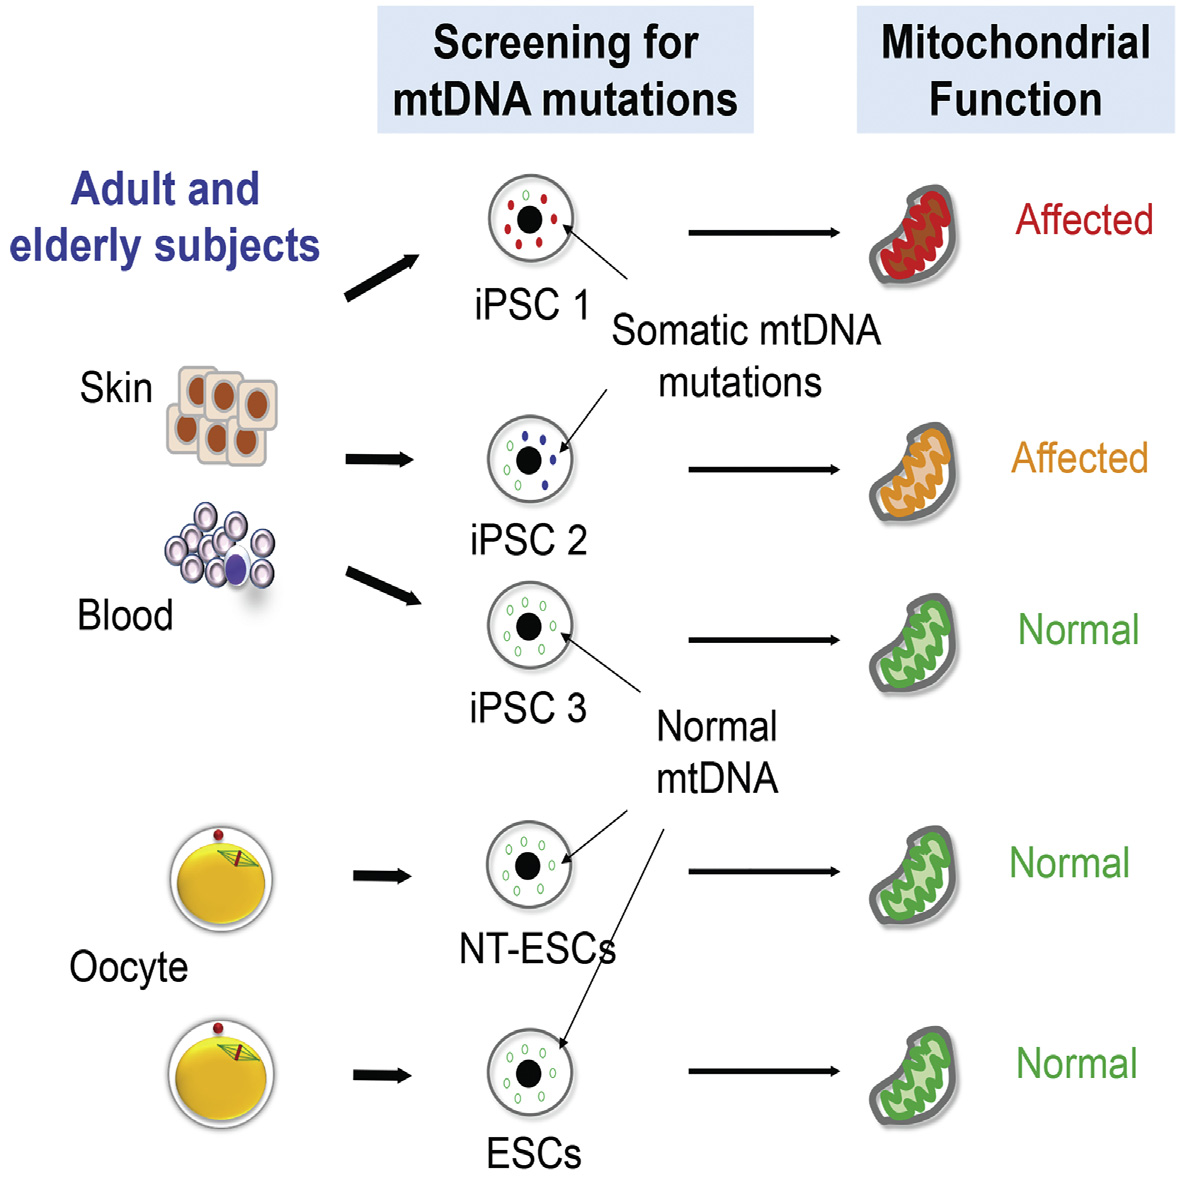 Stem cells derived from older patients contained more mitochondrial mutations. Credit: Mitalipov et al./Cell Stem Cell 2016